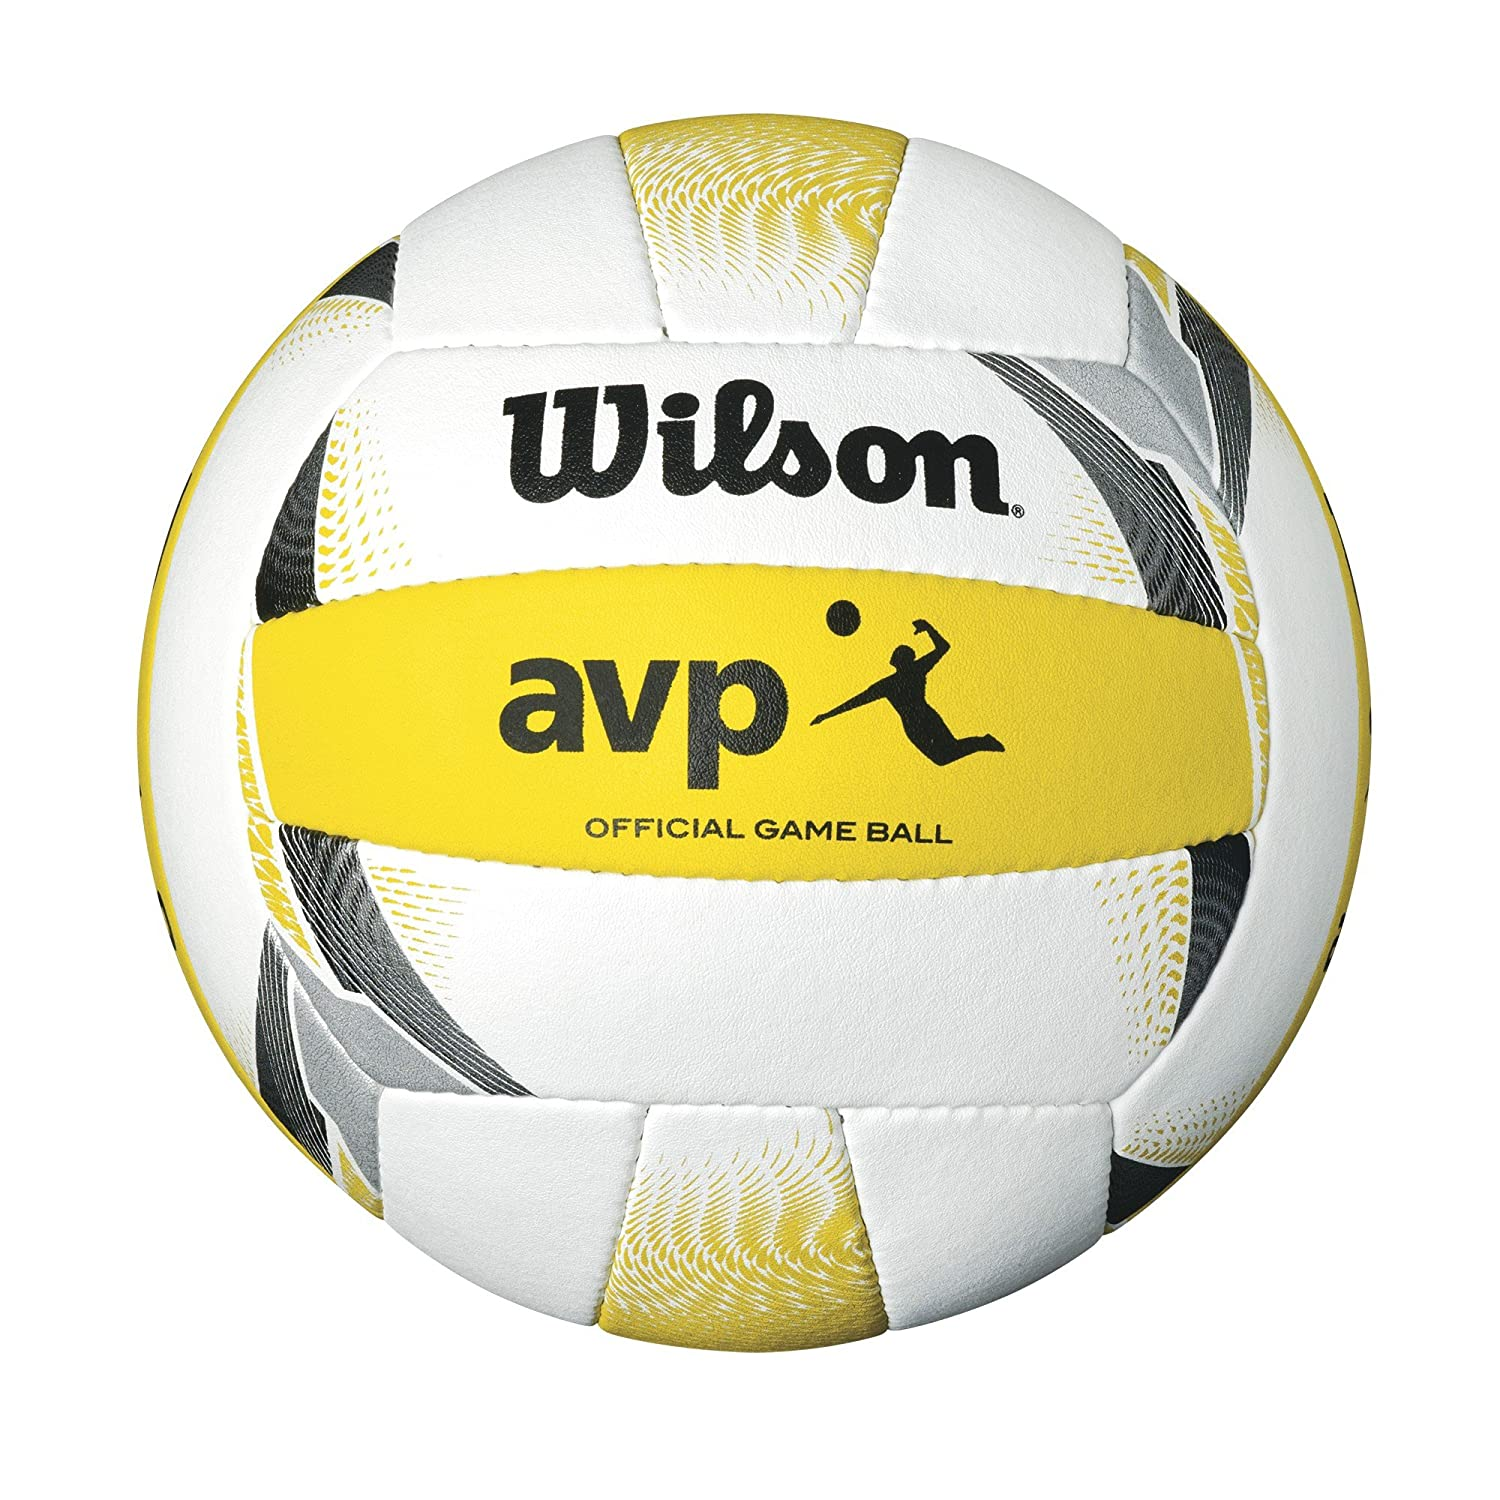 Wilson AVP II Offizielles Beach Volleyball Wilson Sporting Goods - Team WTH6007ID